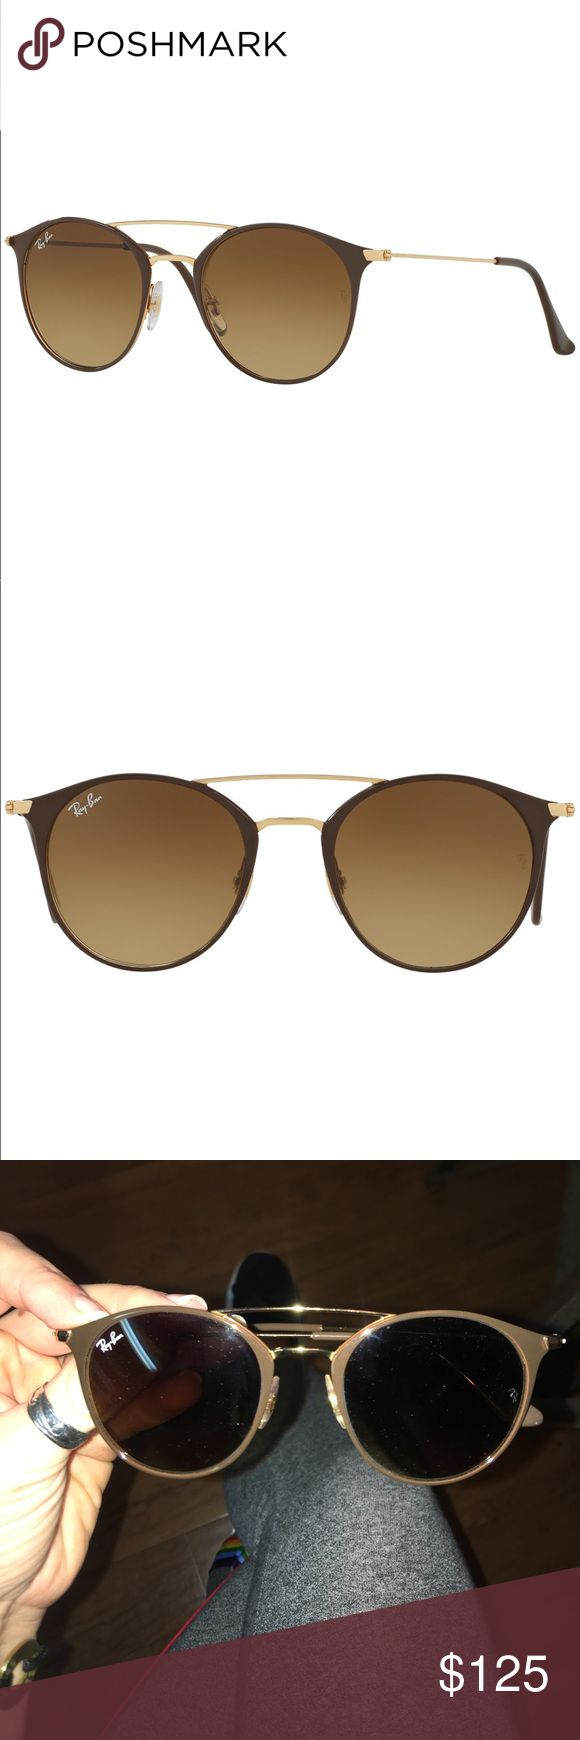 Ray-Ban 3546 Excellent condition. Please read last picture for sunglasses details! Comes with case and cloth. Will only accept generous offers! Priced $178 at Sunglass Hut and Macy's. 100% authentic. Ray-Ban Accessories Glasses